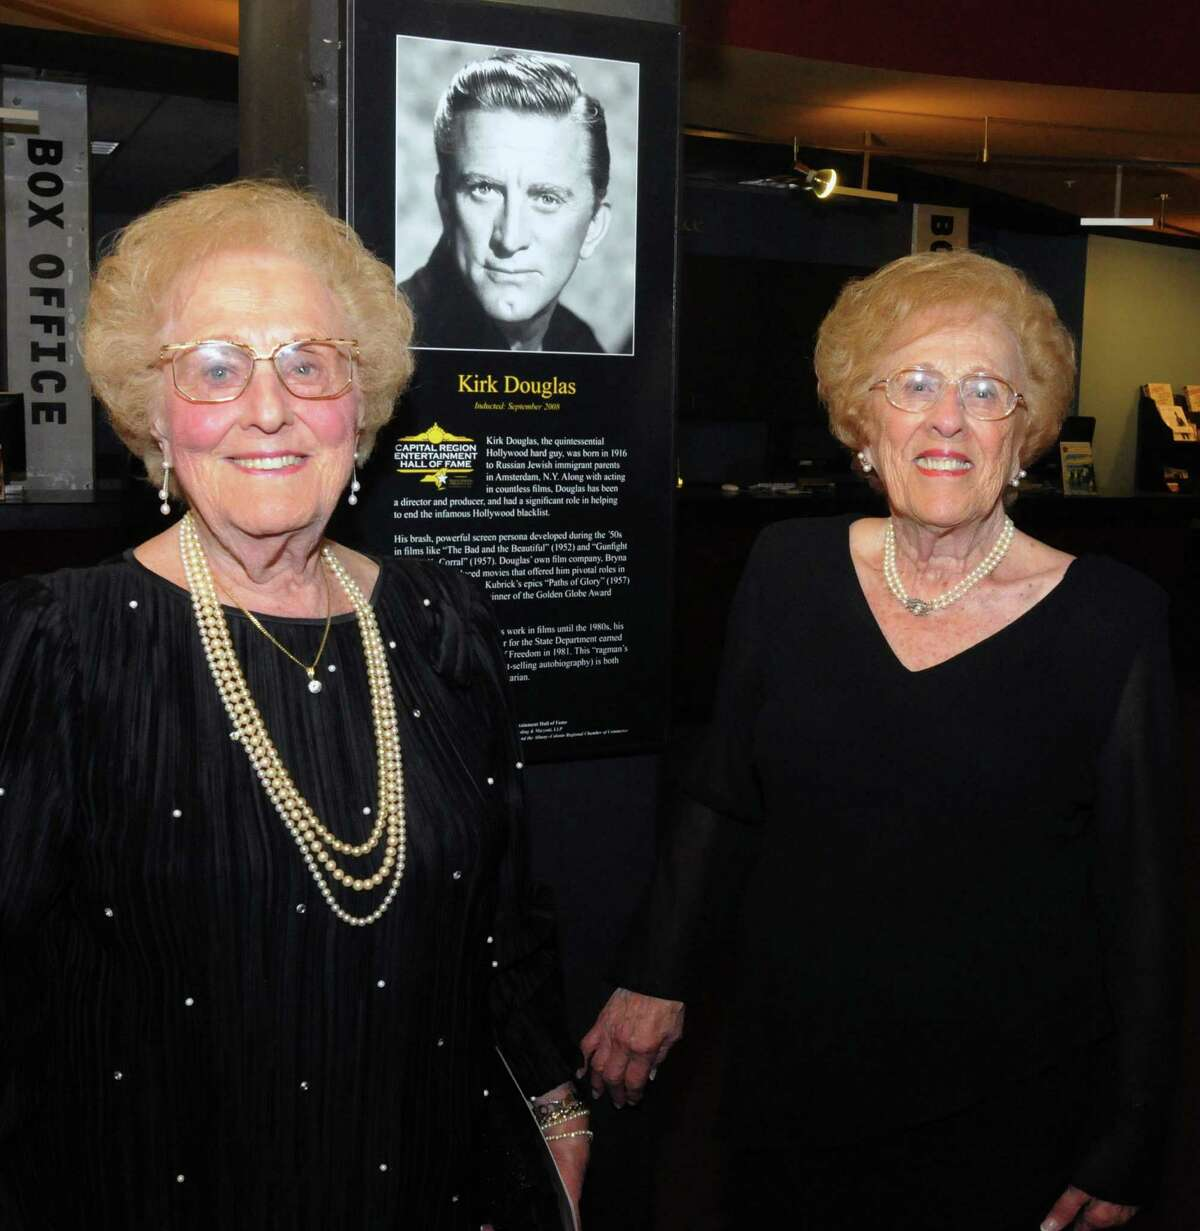 Twins, Fritzi Becker, of Albany N.Y. and Ida Sahr, of Schenectady, sisters of Kirk Douglas, attend the Proctors Capital Region Hall of Fame induction Sept. 20, 2008. (James Goolsby/Times Union archive)